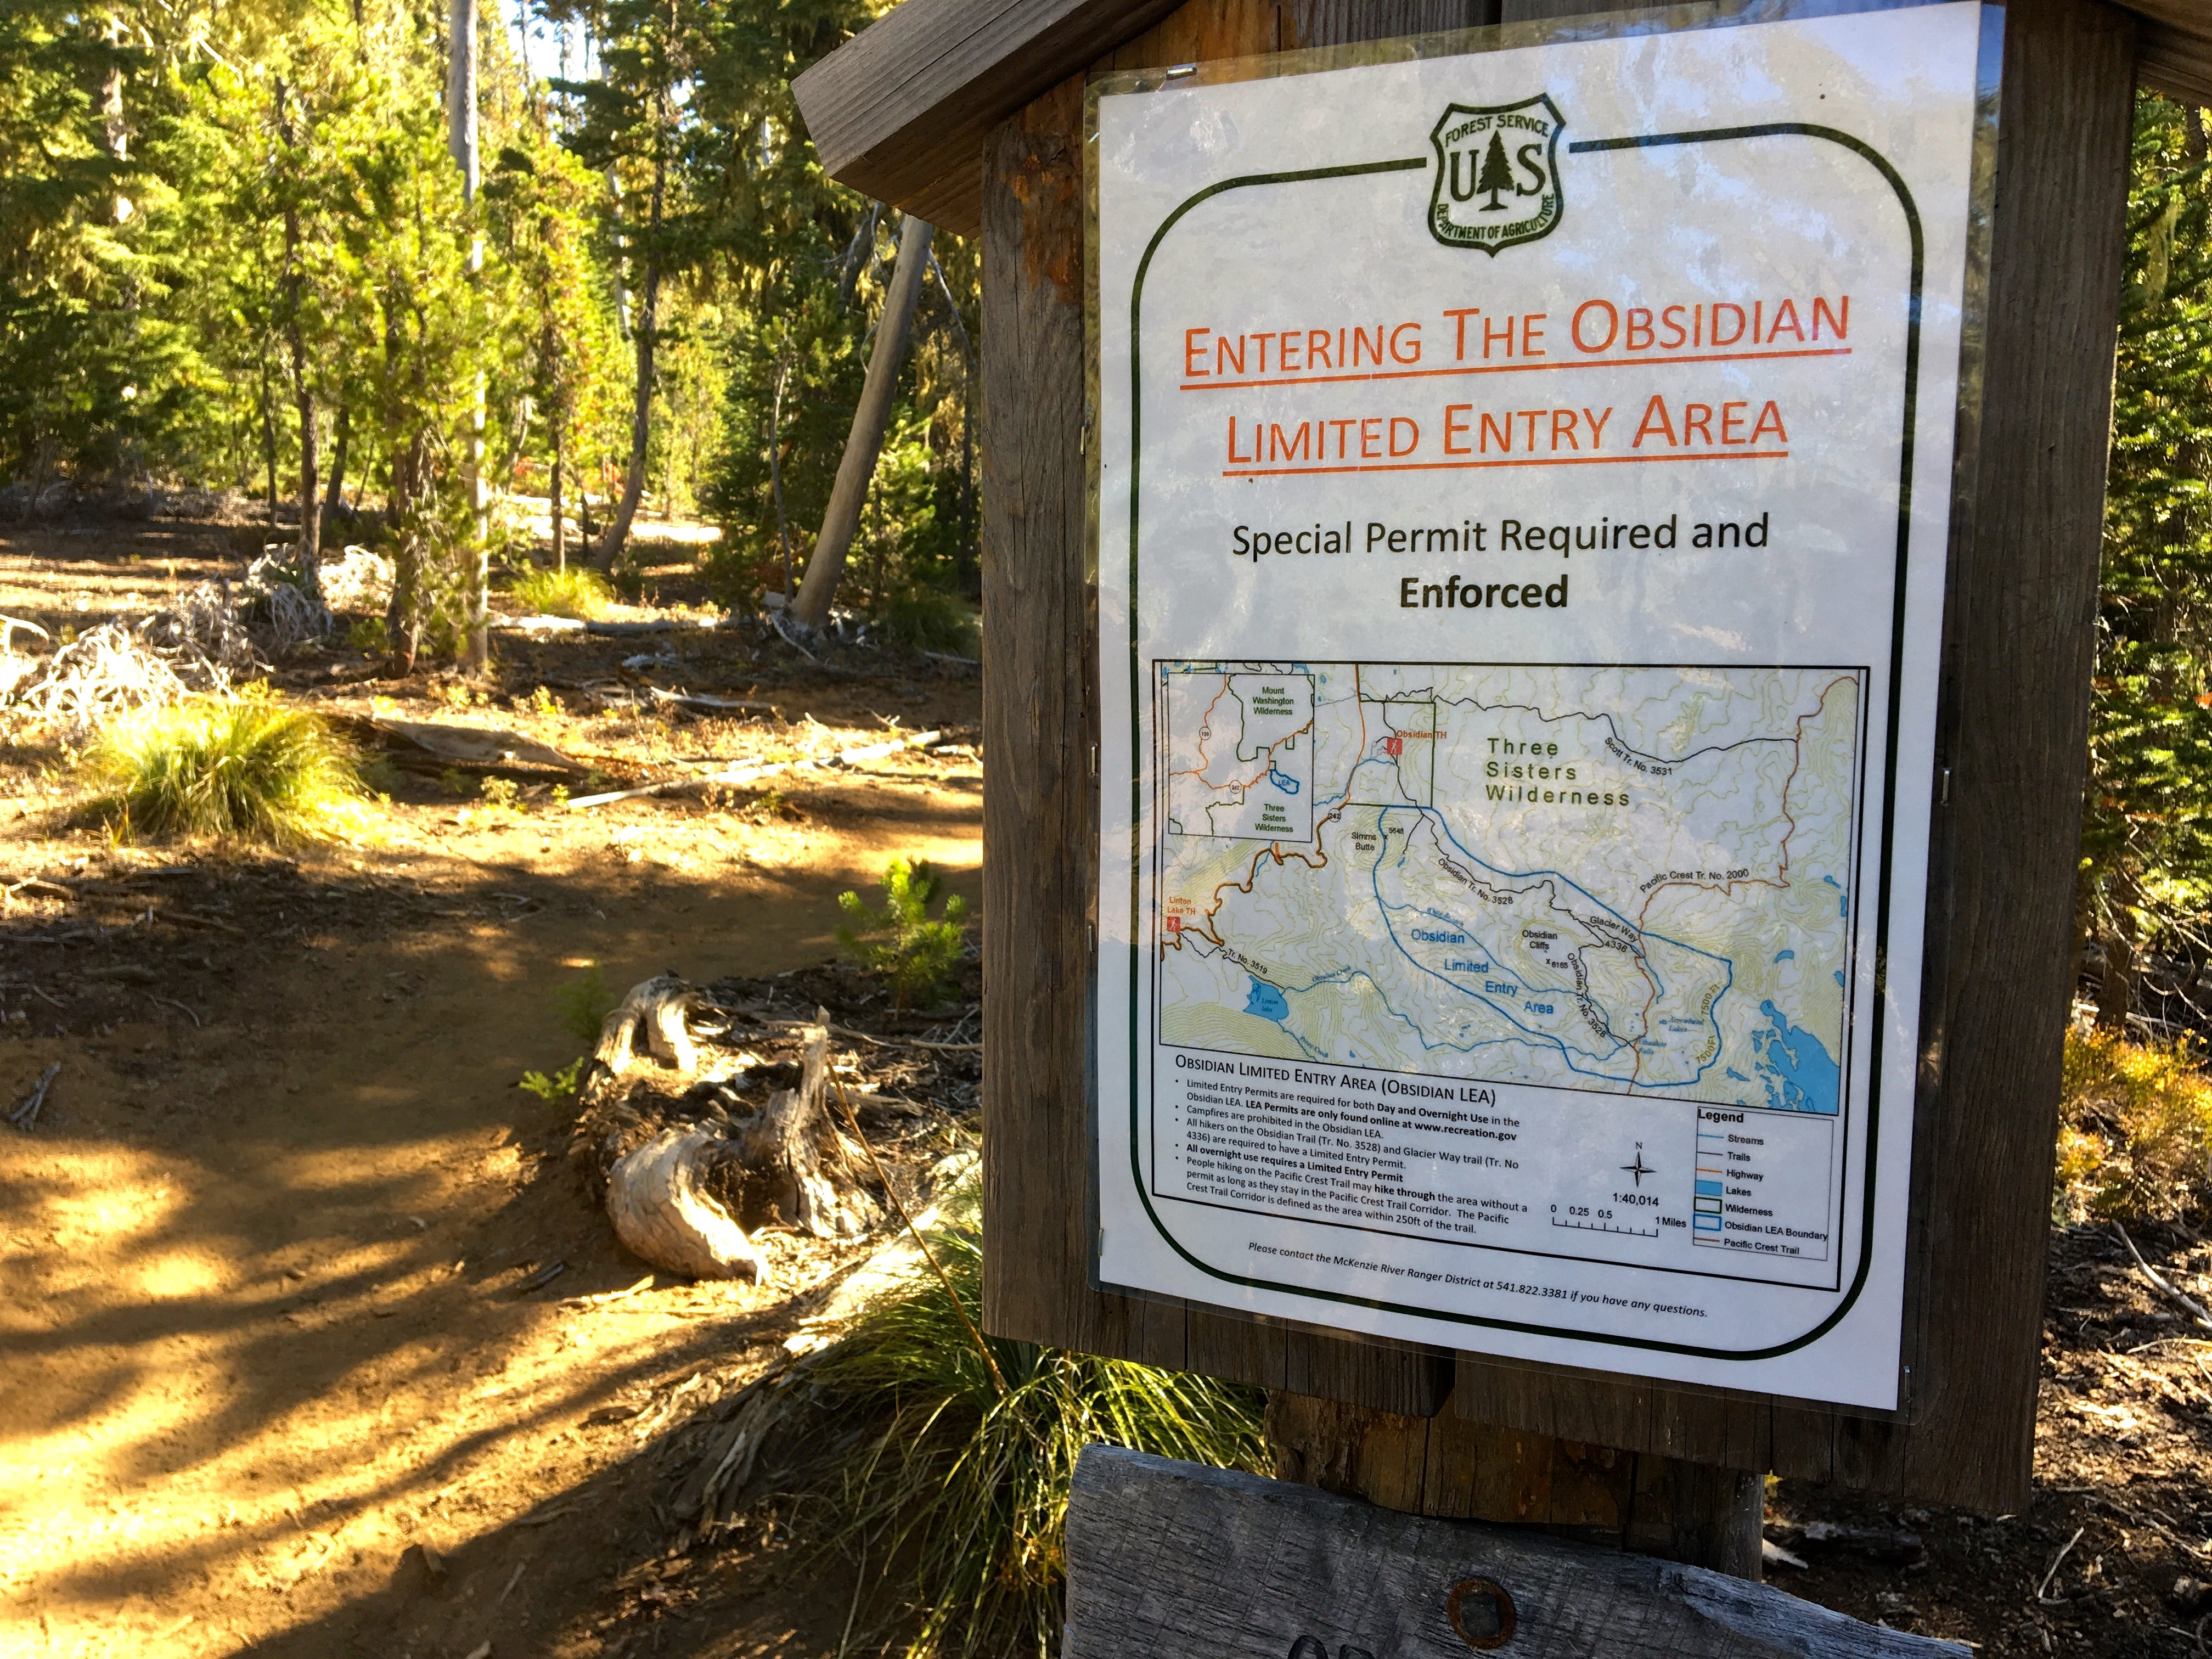 Obsidian Trail, in the Three Sisters Wilderness, requires a special permit to enter.